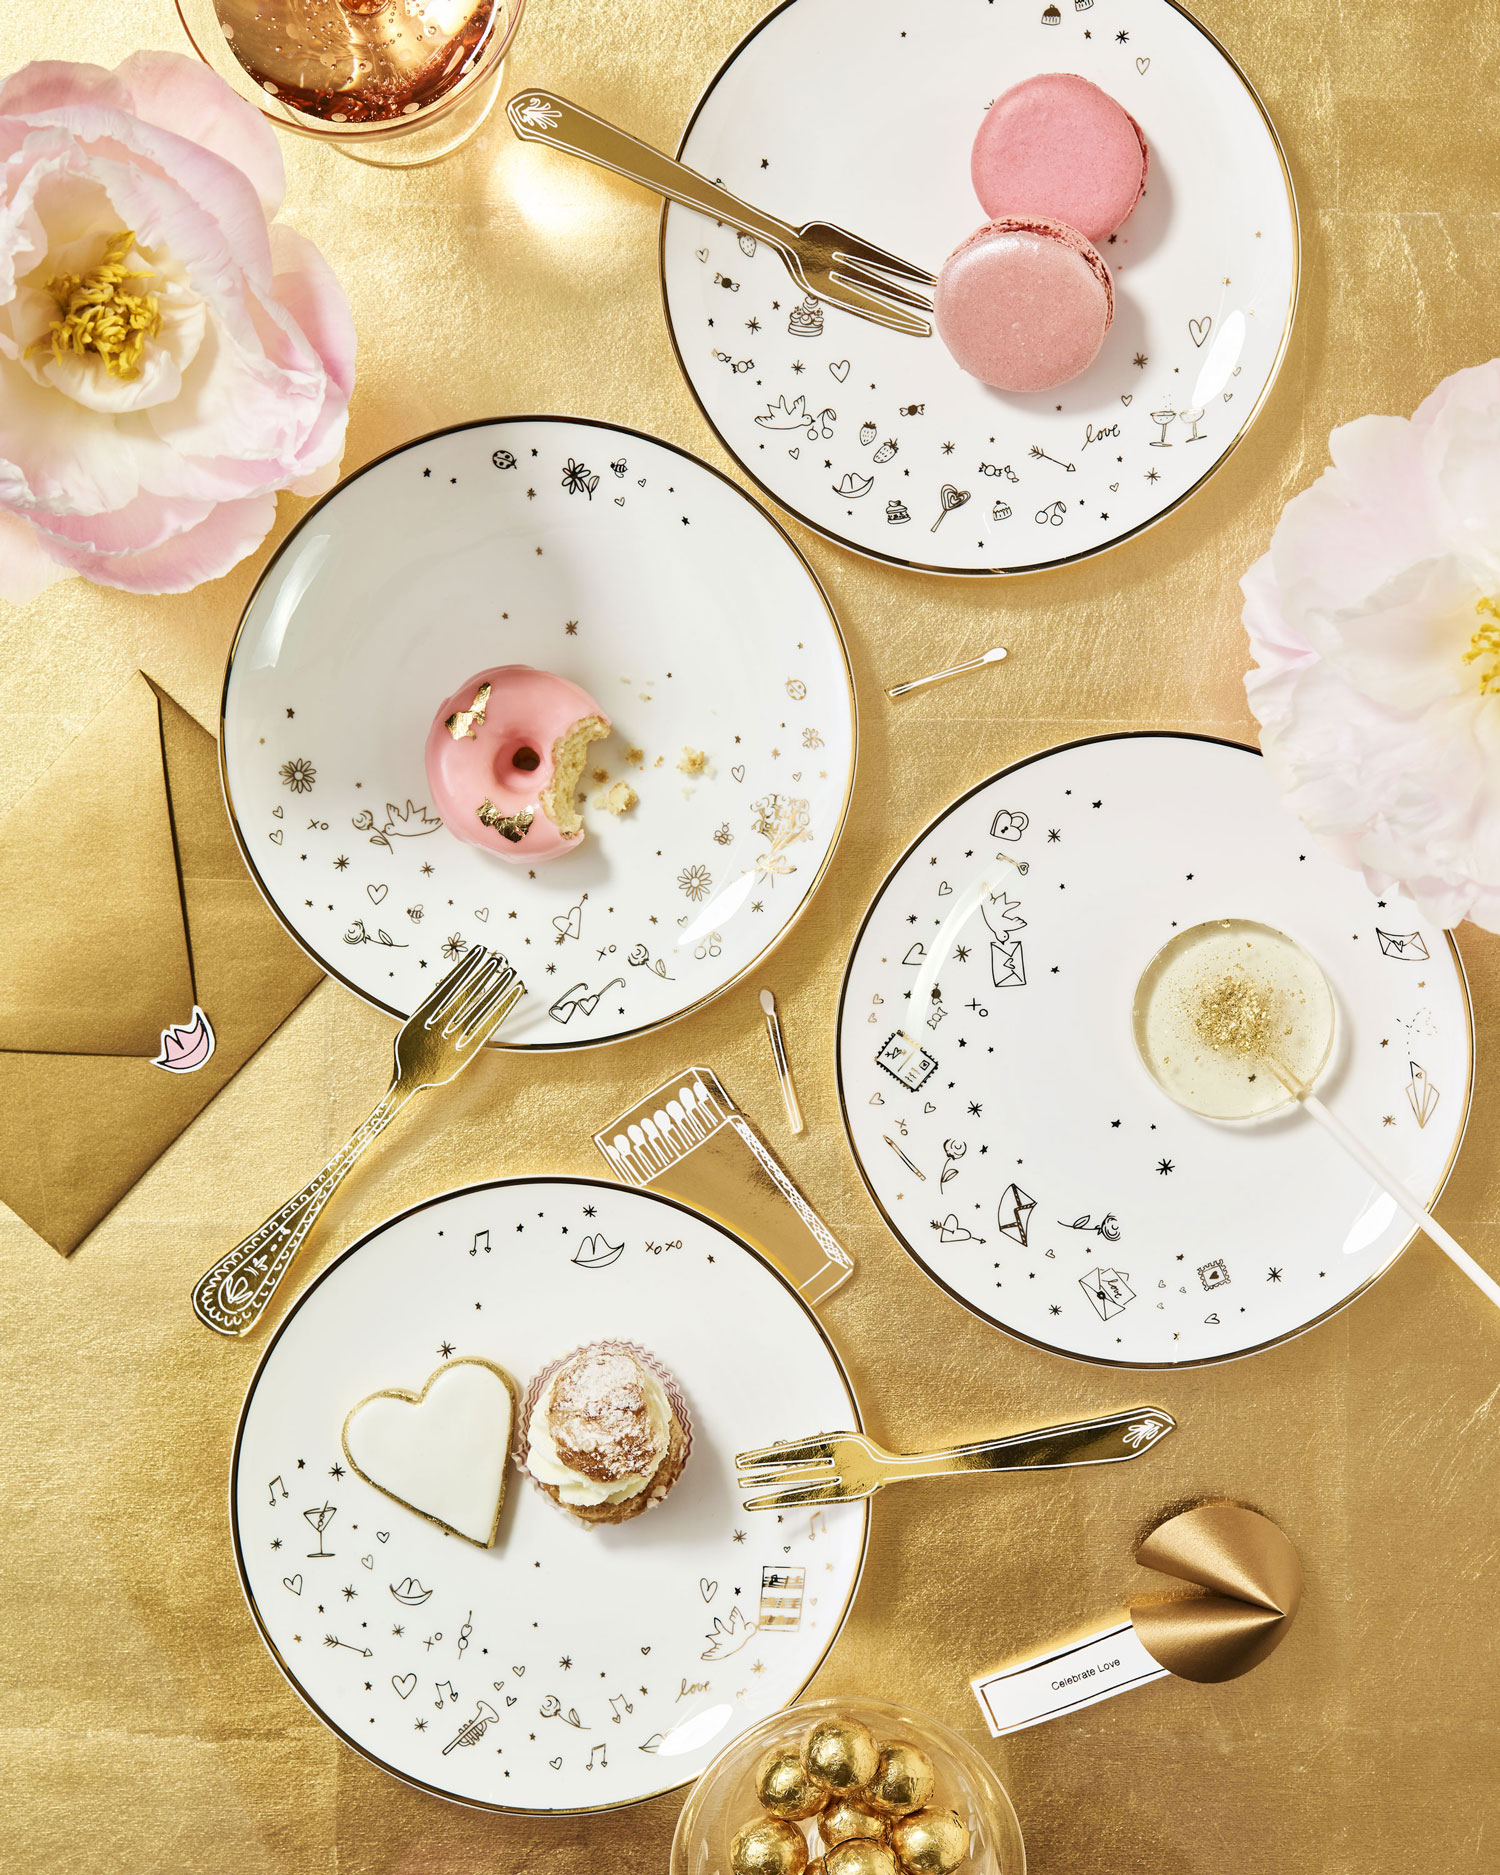 darcy miller lenox celebrate everything tidbit plates gold white china valentine's day gift ideas